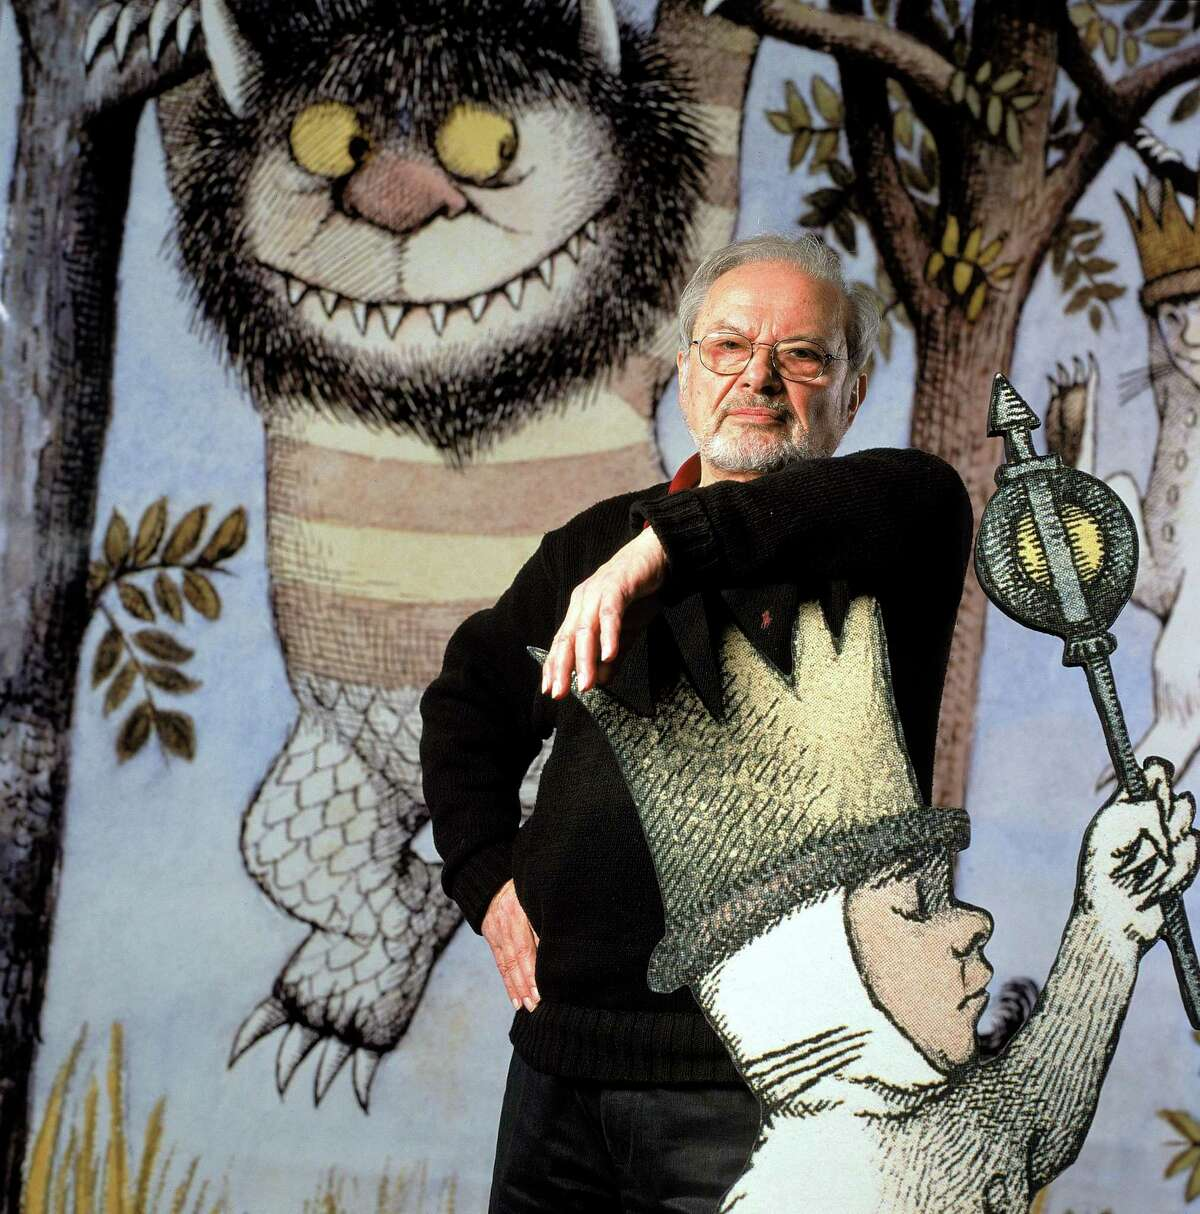 Author/illustrator Maurice Sendak standing by an life-size scene from his book